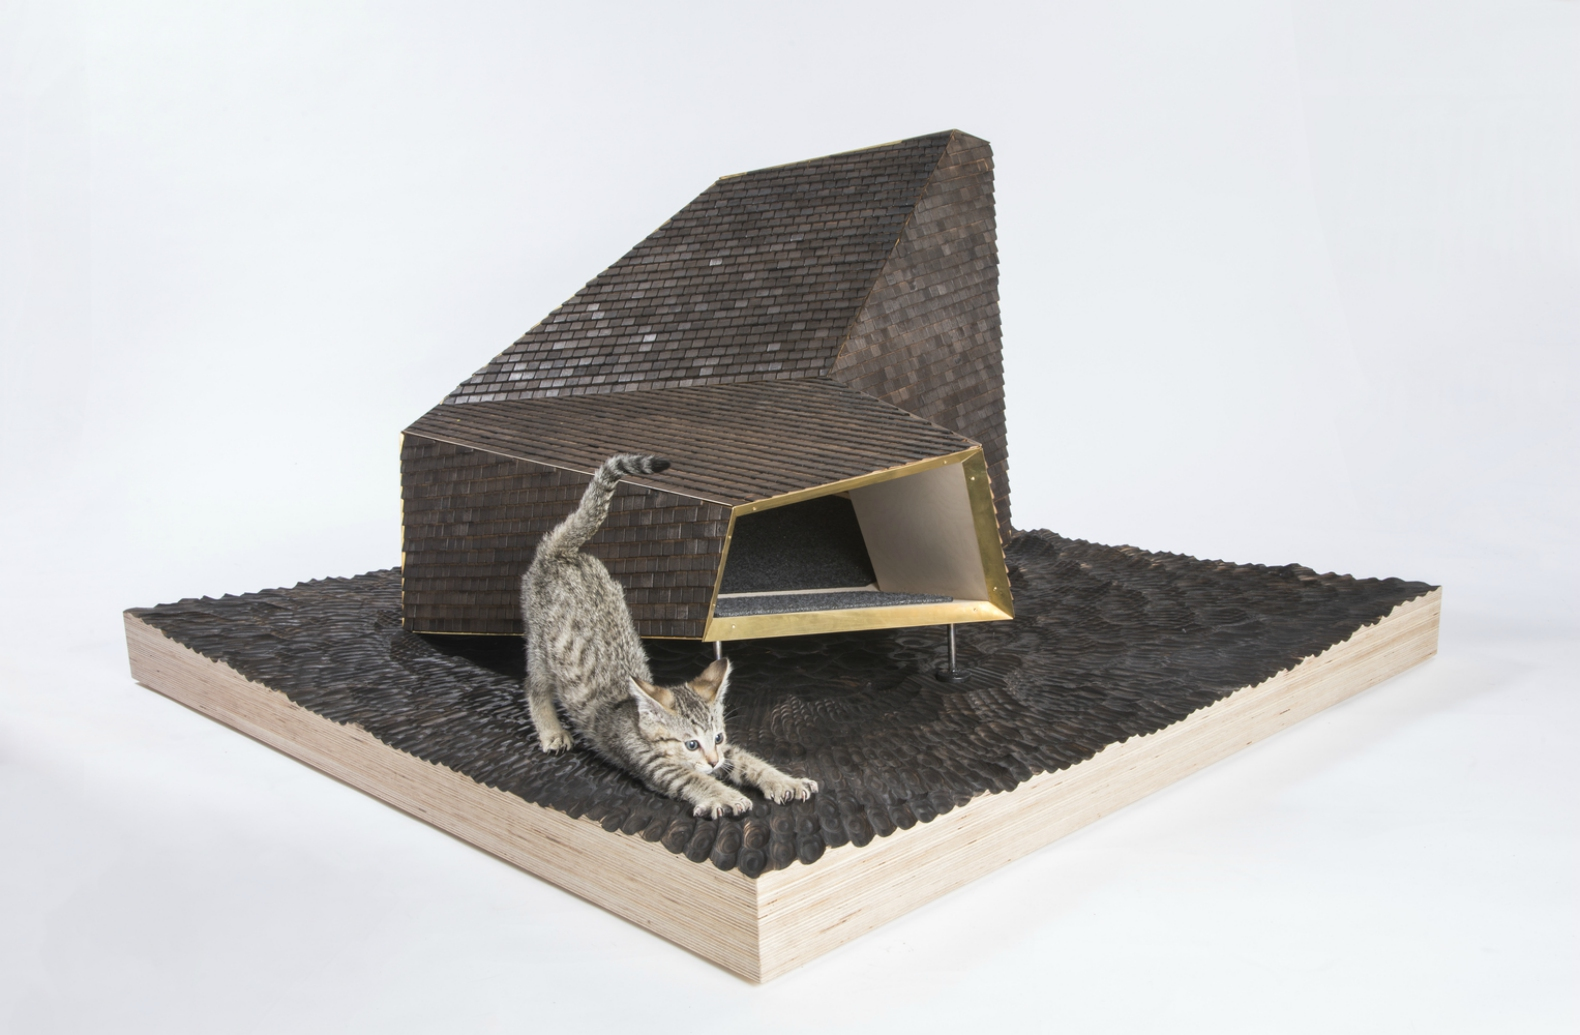 Cat House Plans Architects Design Incredible Cat Shelters To Raise Money